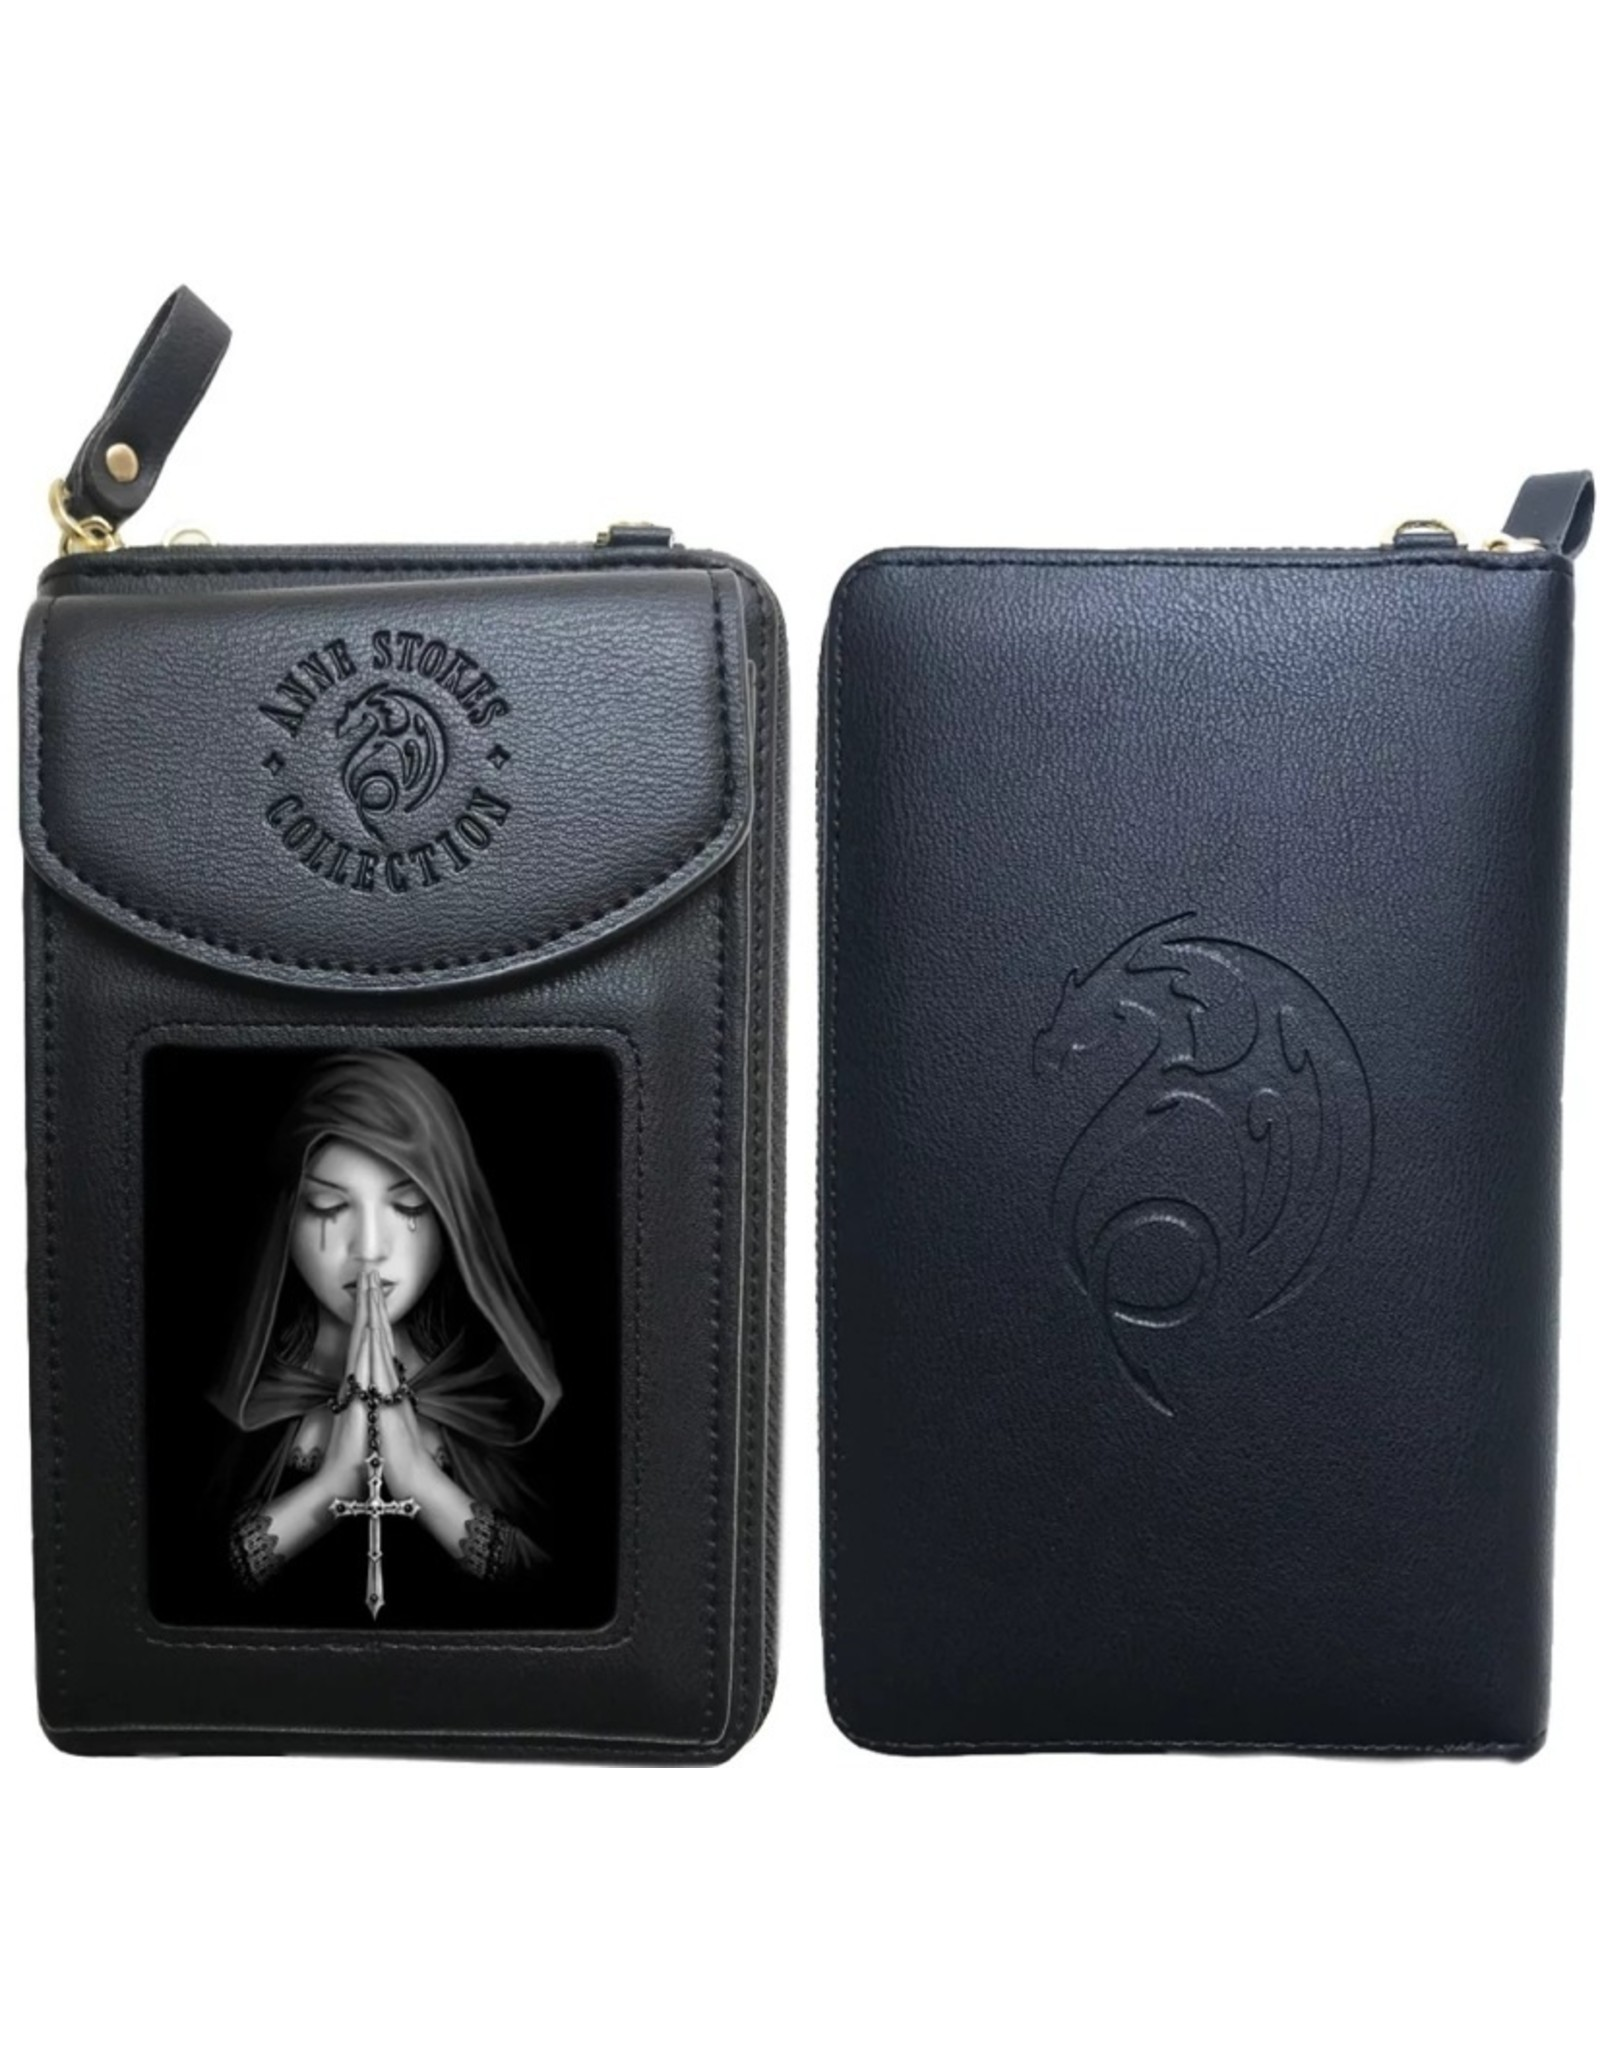 Anne Stokes 3D Lenticular Wallets and Purses - 3D Phone case Gothic Prayer - Anne Stokes